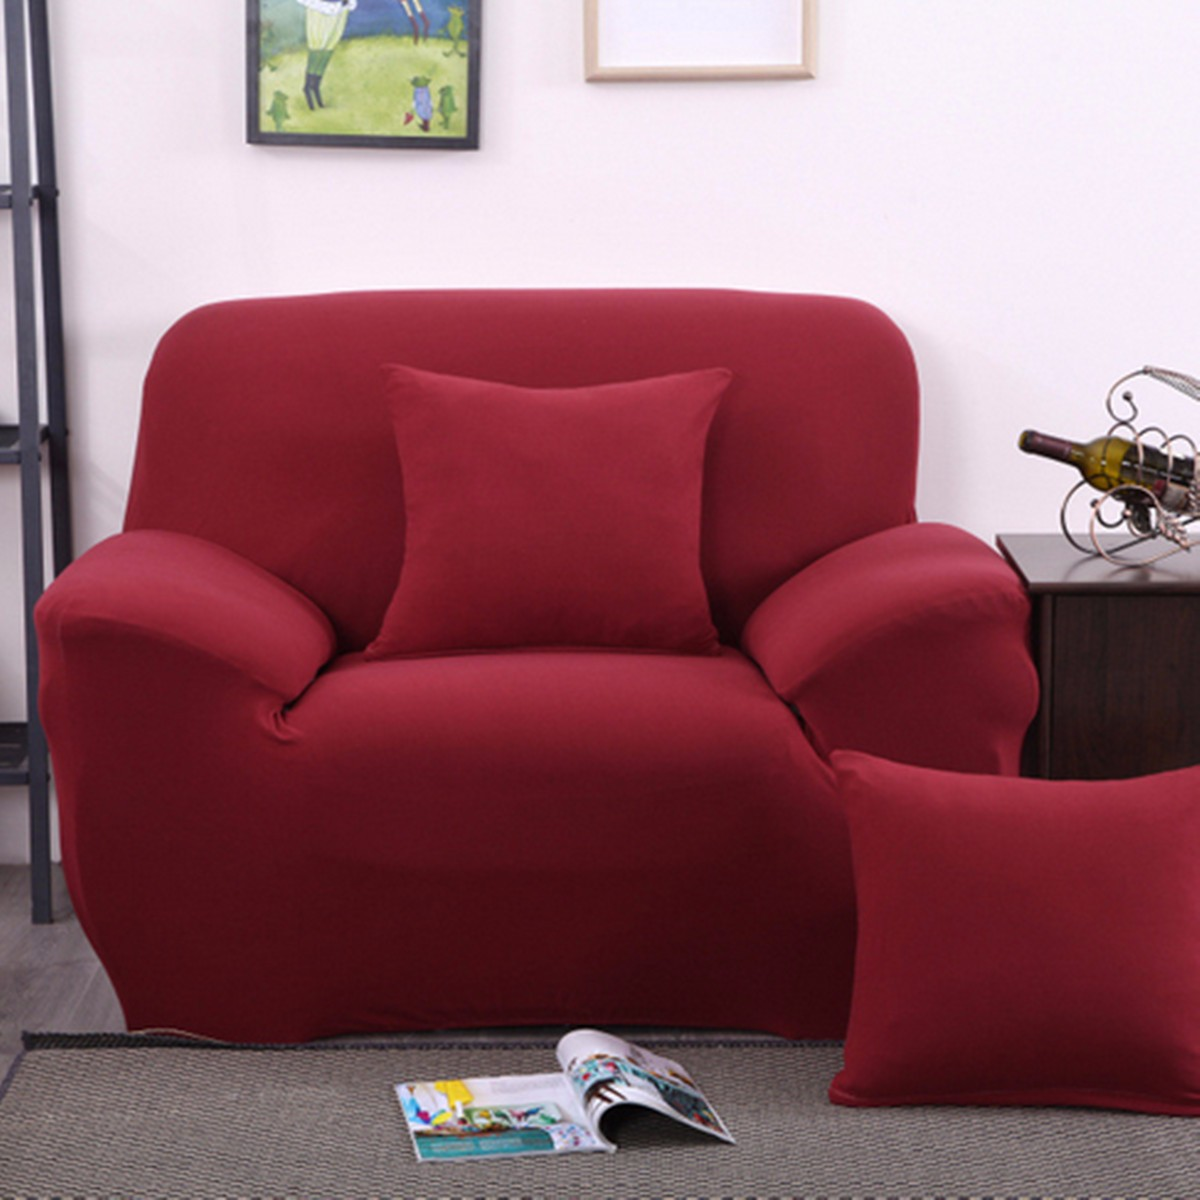 Online Get Cheap Couch Cover Sets Aliexpresscom Alibaba Group